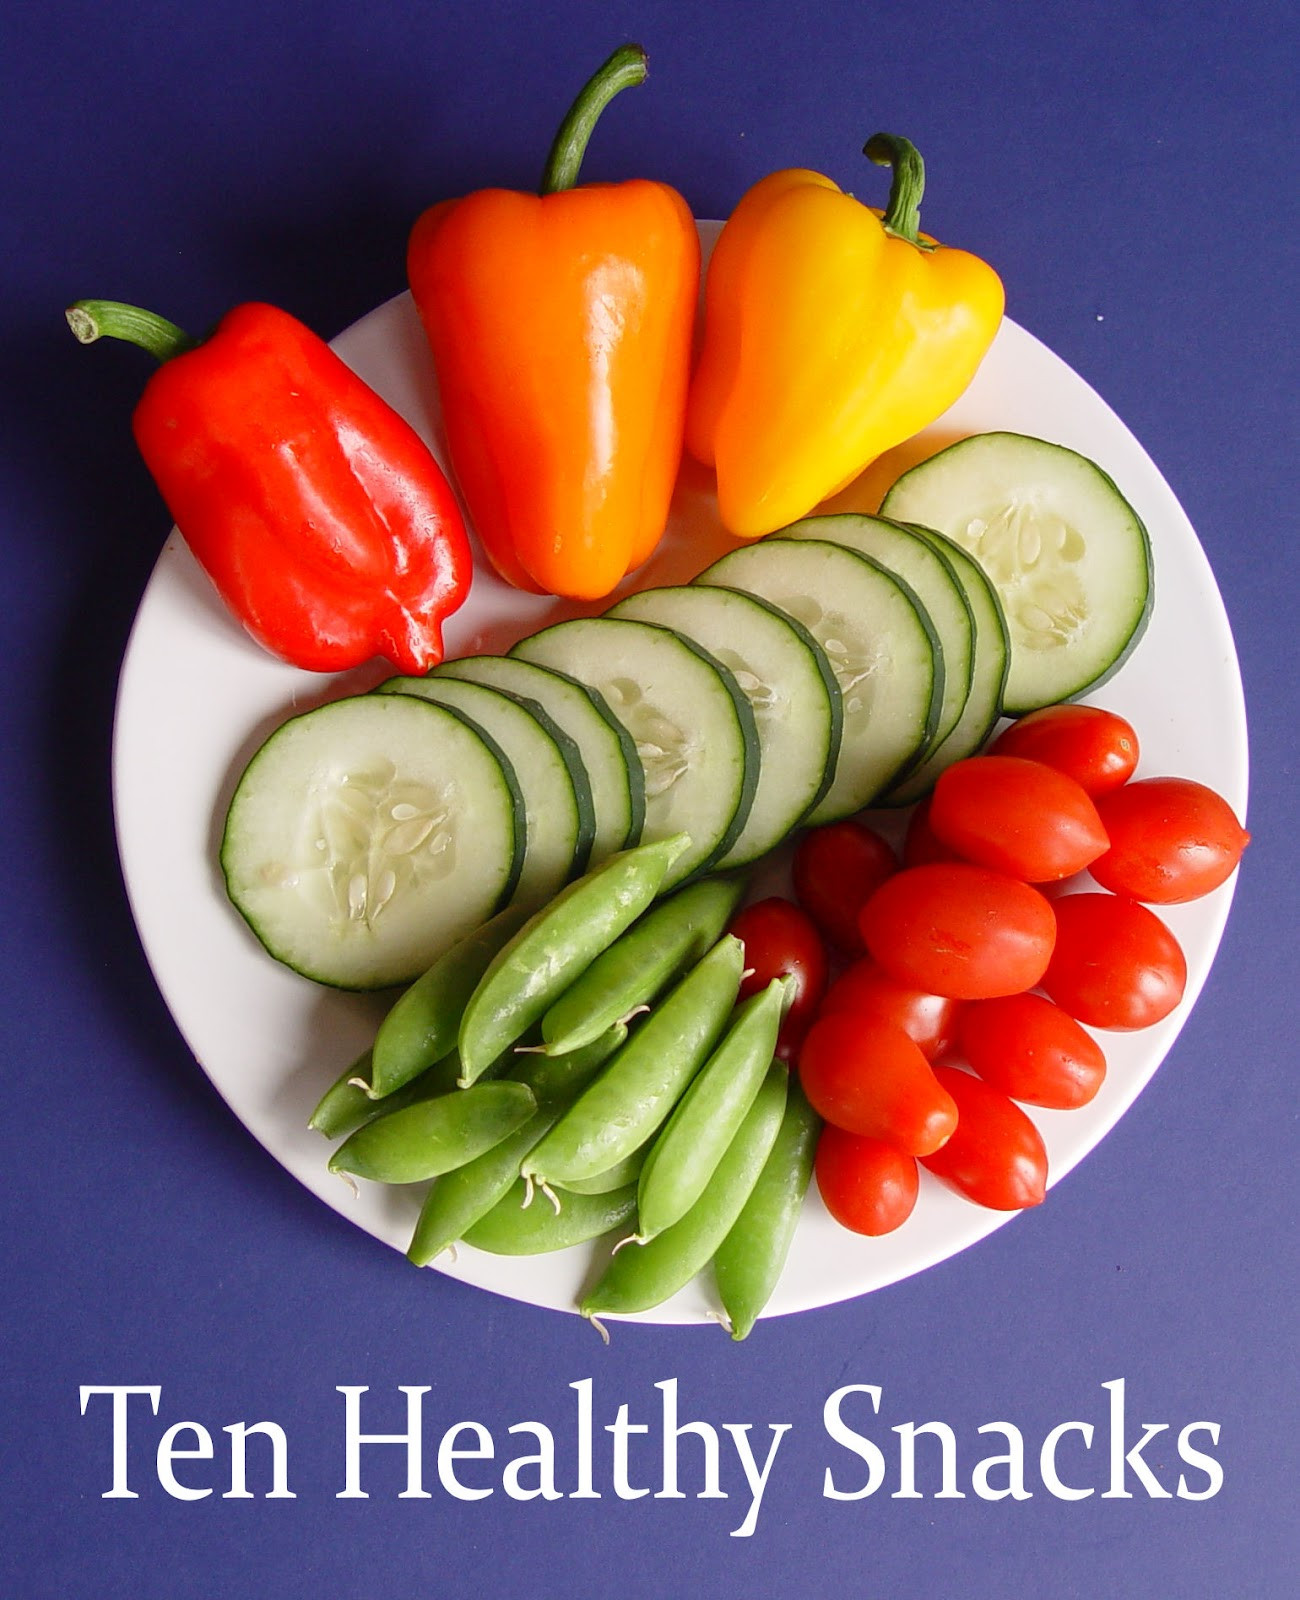 Healthy Meals And Snacks  Ten Healthy Snacks with Printable Page